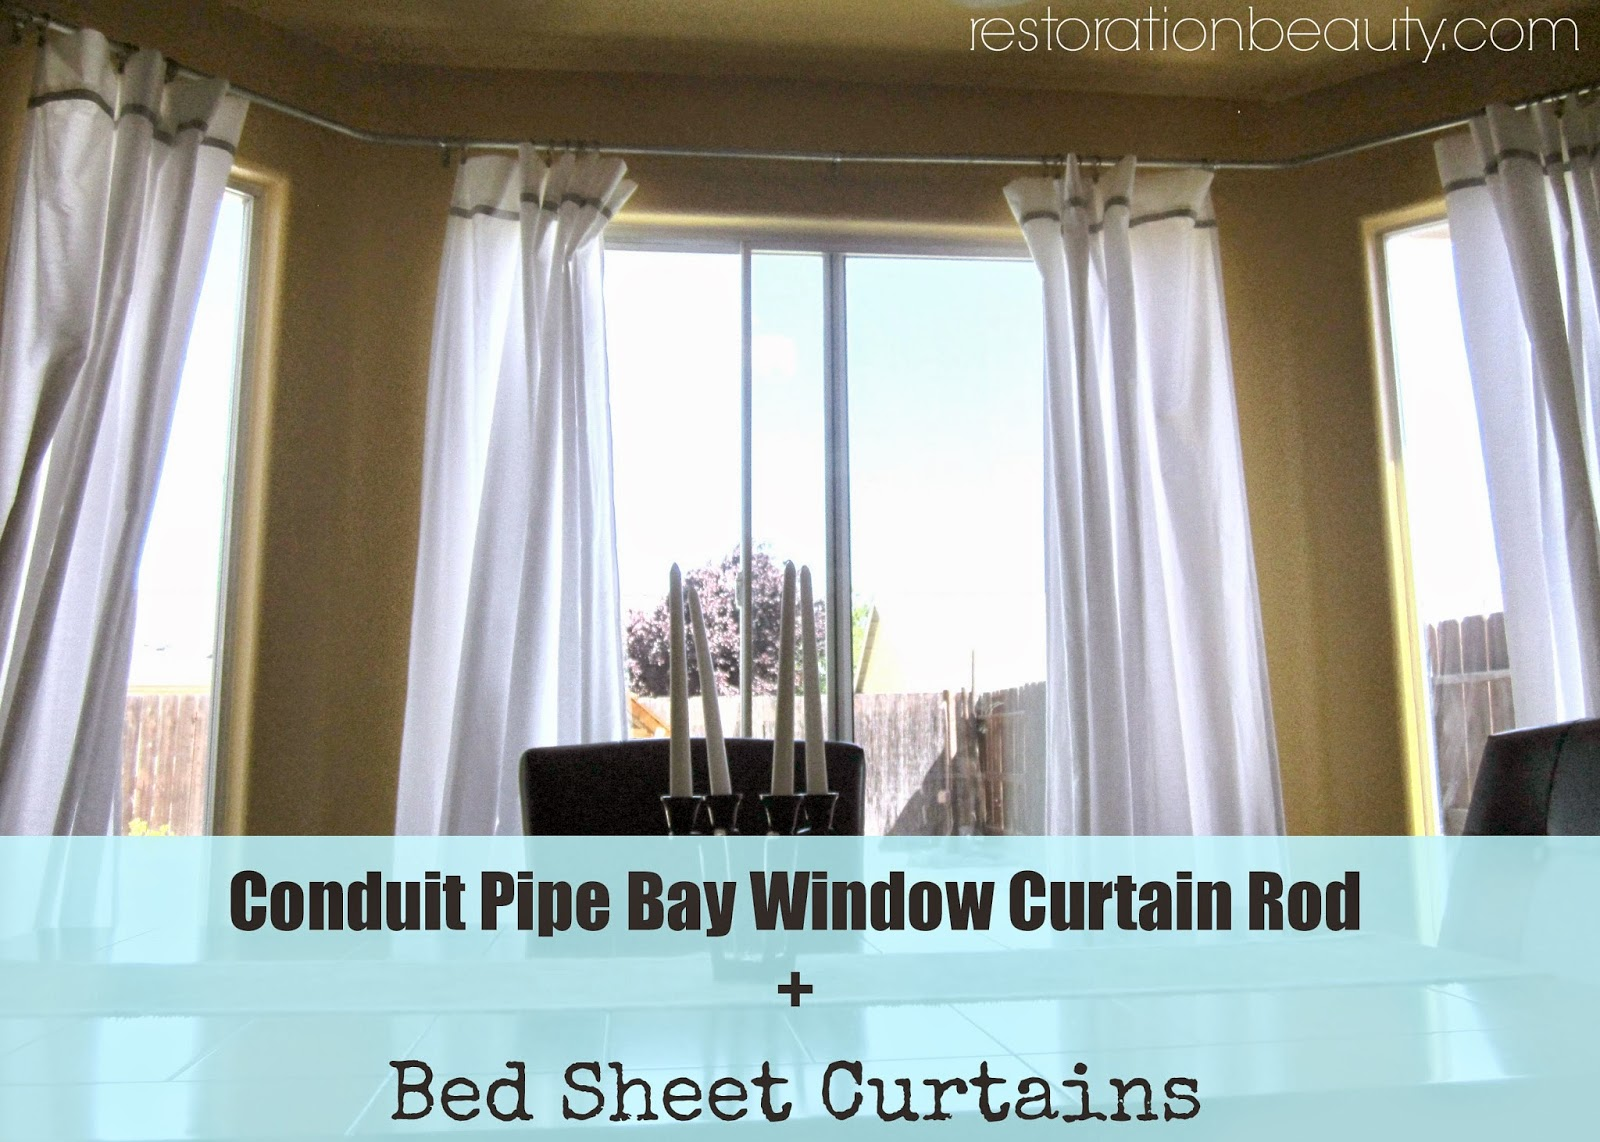 Restoration Beauty: Conduit Pipe Bay Window Curtain Rod ...